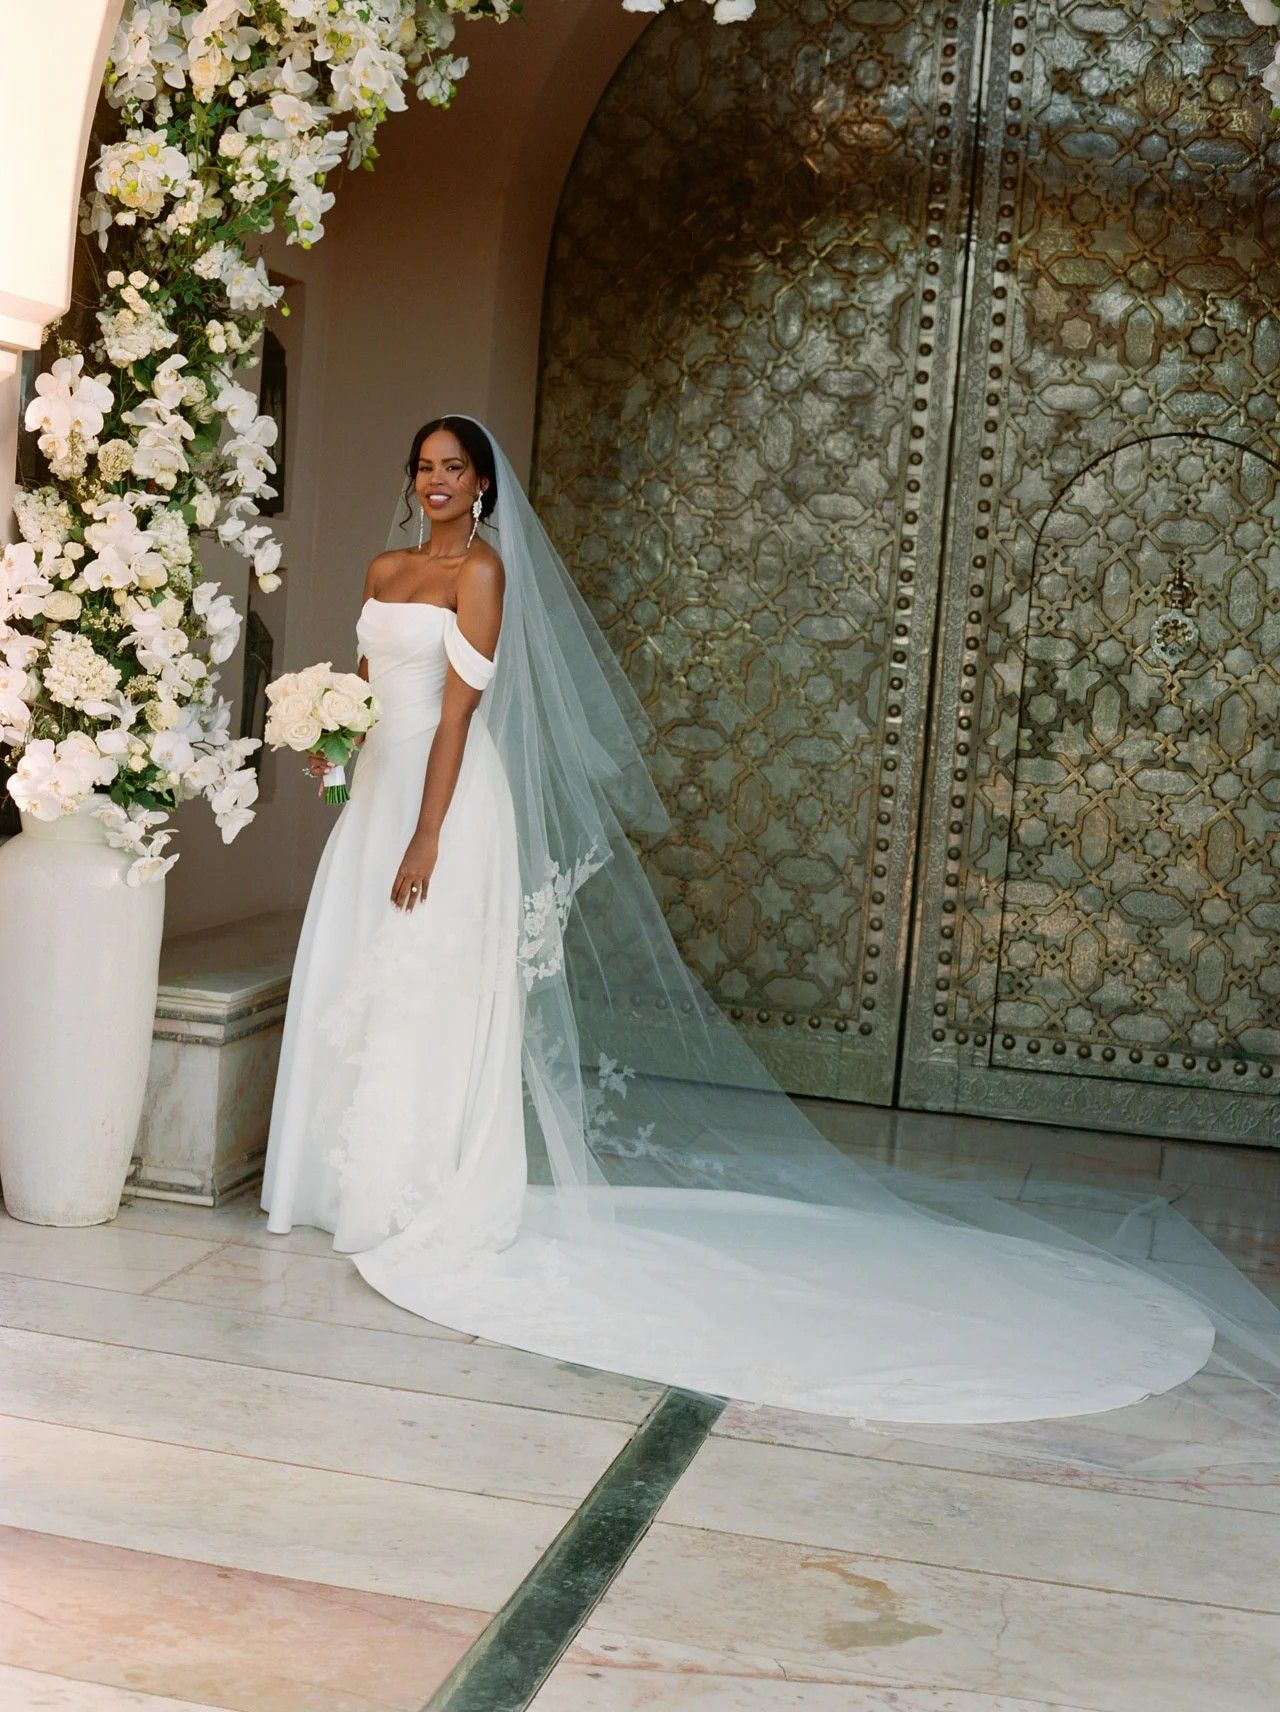 Pin By Petroula Savoulidou On All About The Bride Celebrity Wedding Dresses Moroccan Wedding Wedding Dresses Vera Wang [ 1712 x 1280 Pixel ]